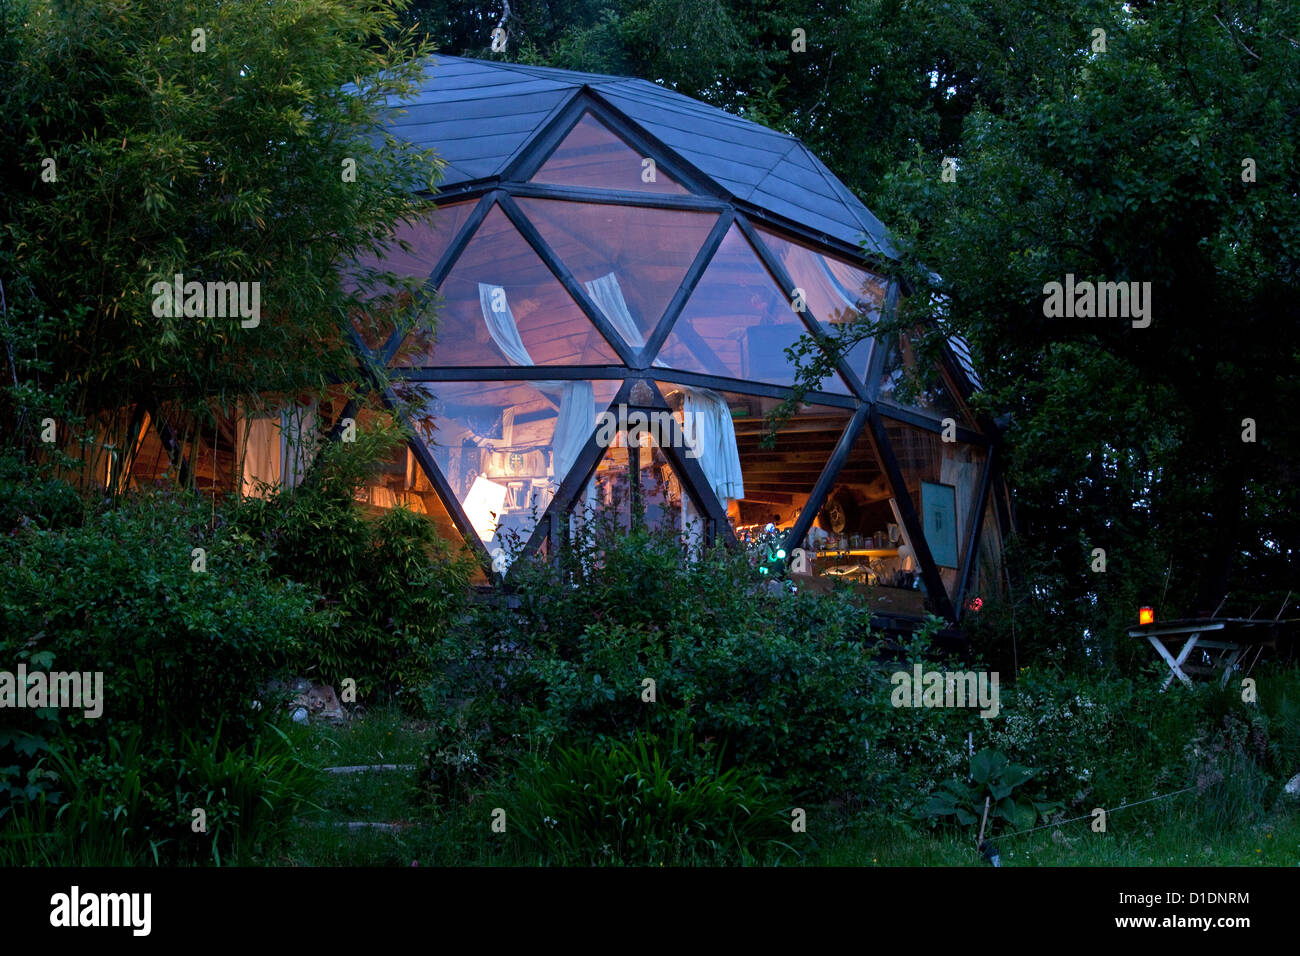 Geodesic Dome By Night In A Private Garden Stock Photo Royalty